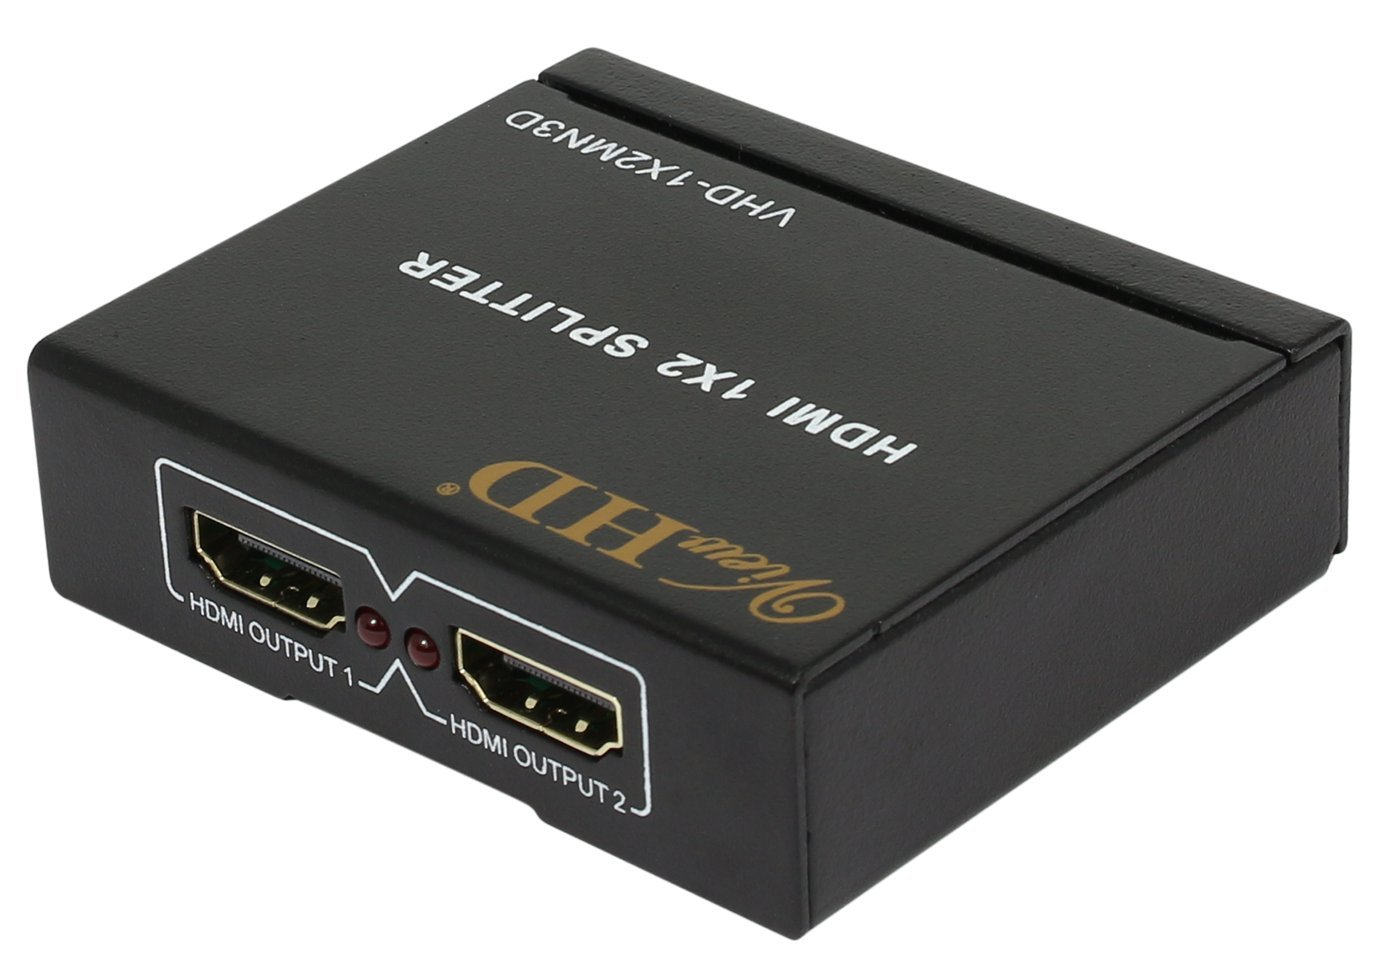 How To Use an Amazon Fire TV Stick with a Computer Monitor